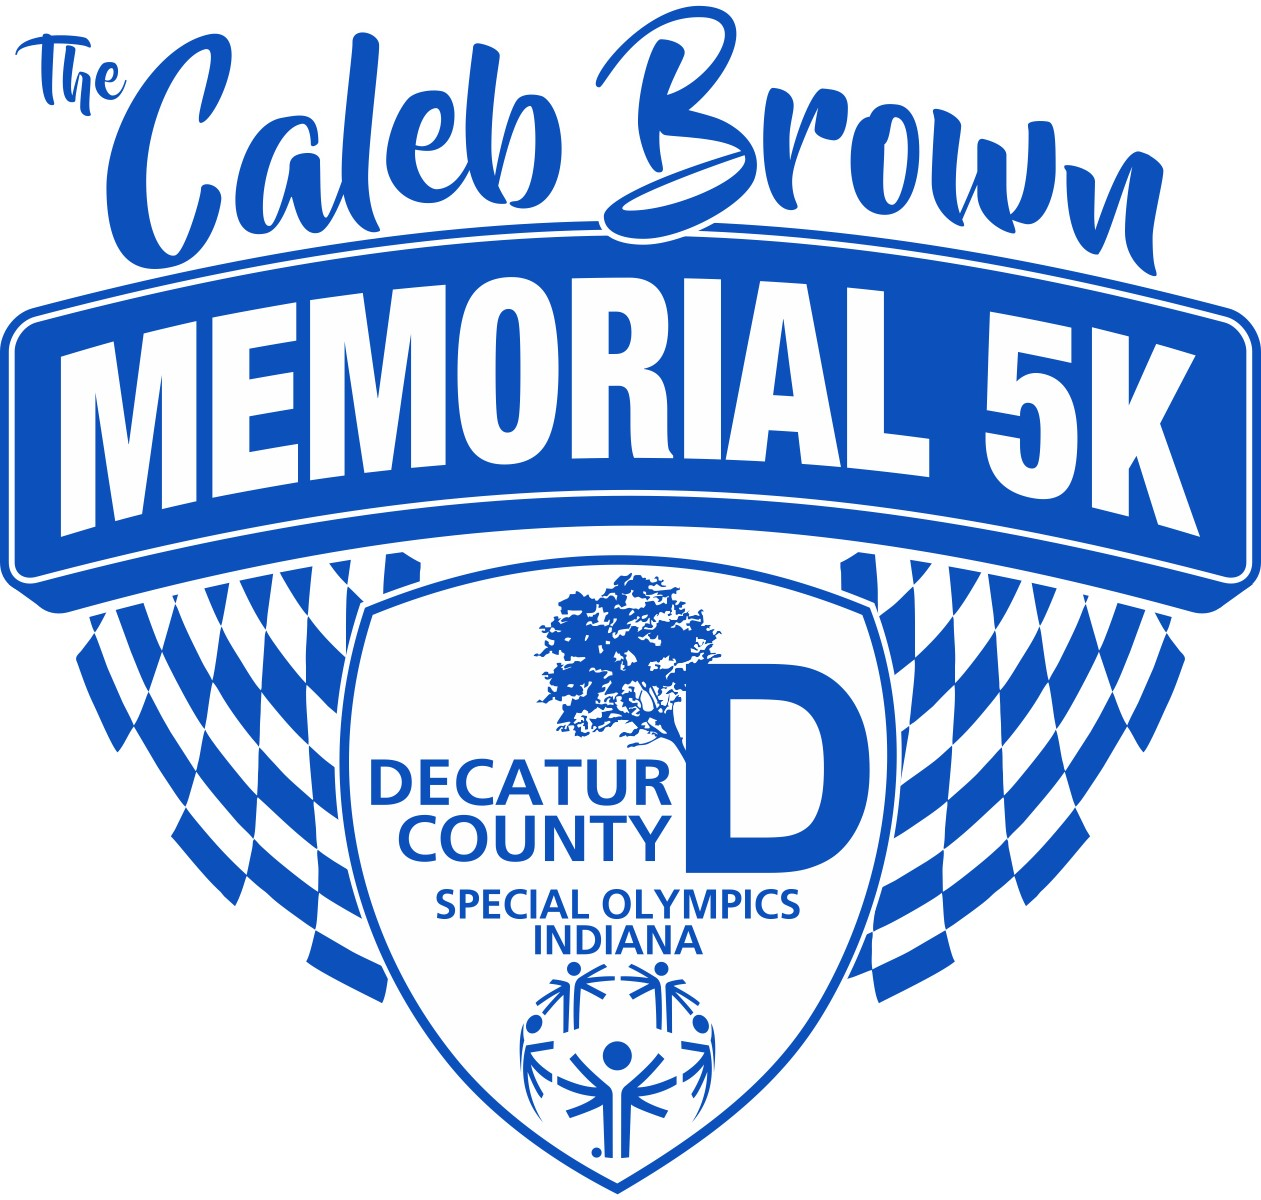 2018 celab brown logo